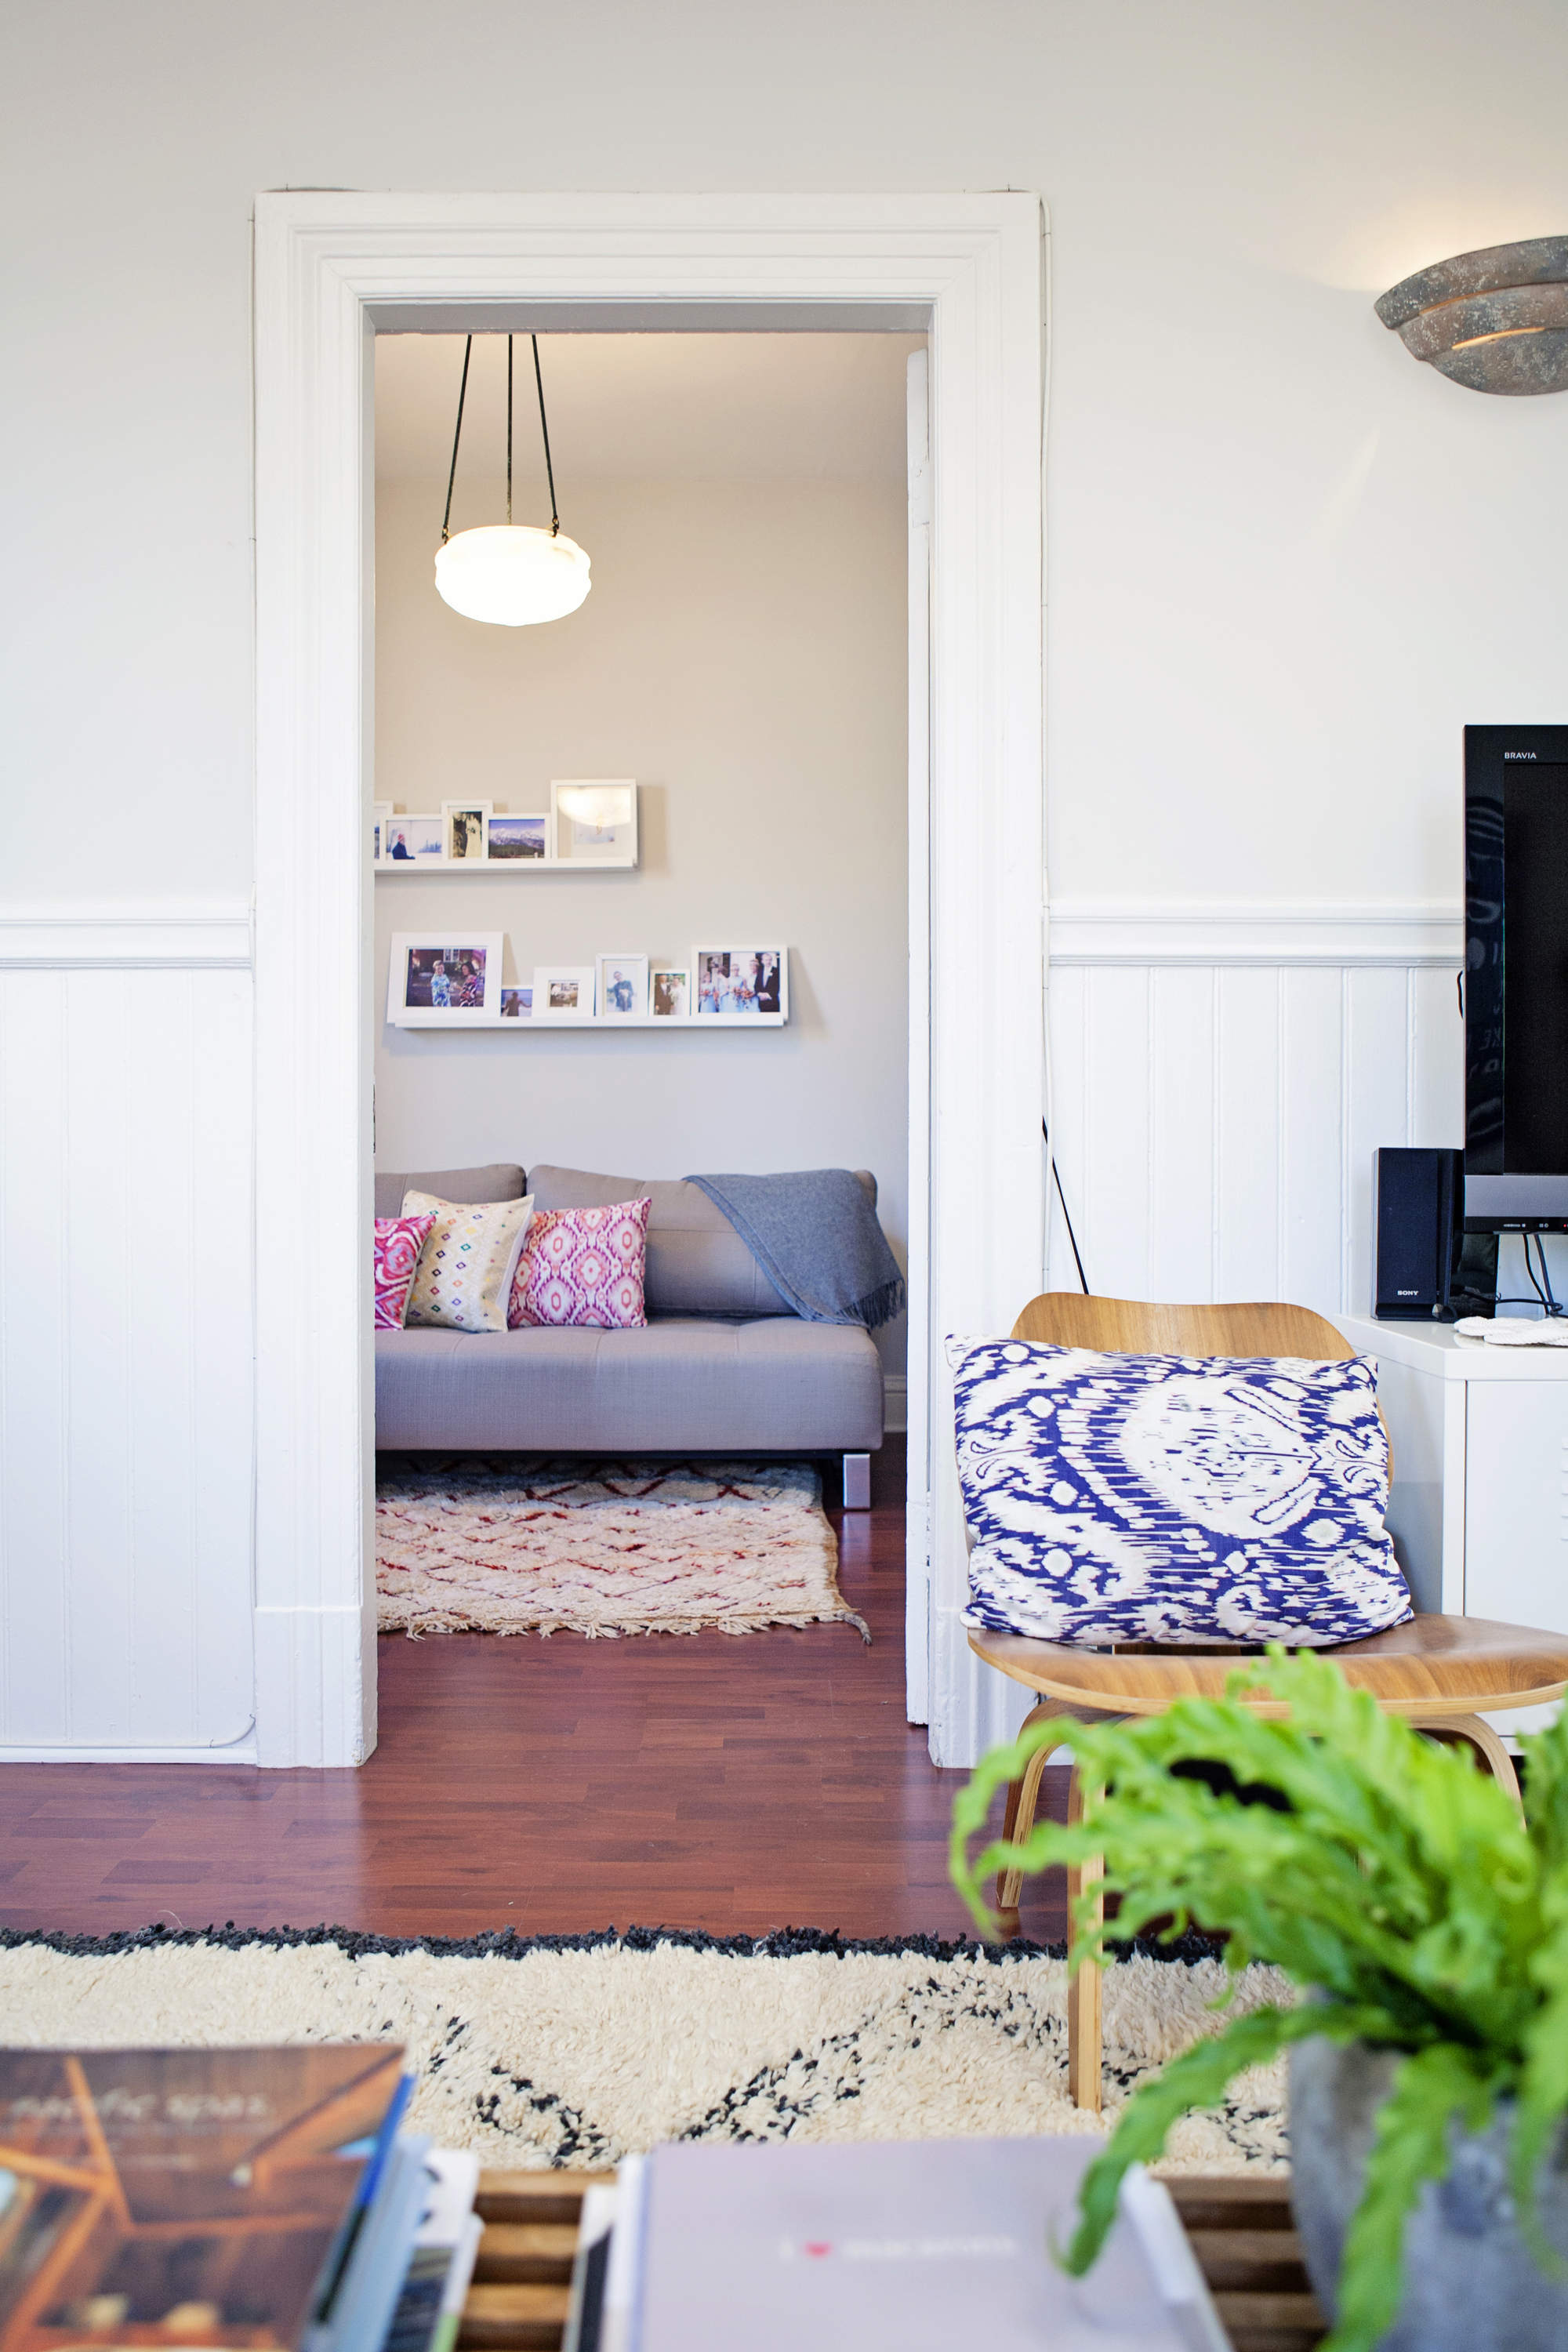 5 Free Ways to Make Any Room Feel More Spacious & Look Better